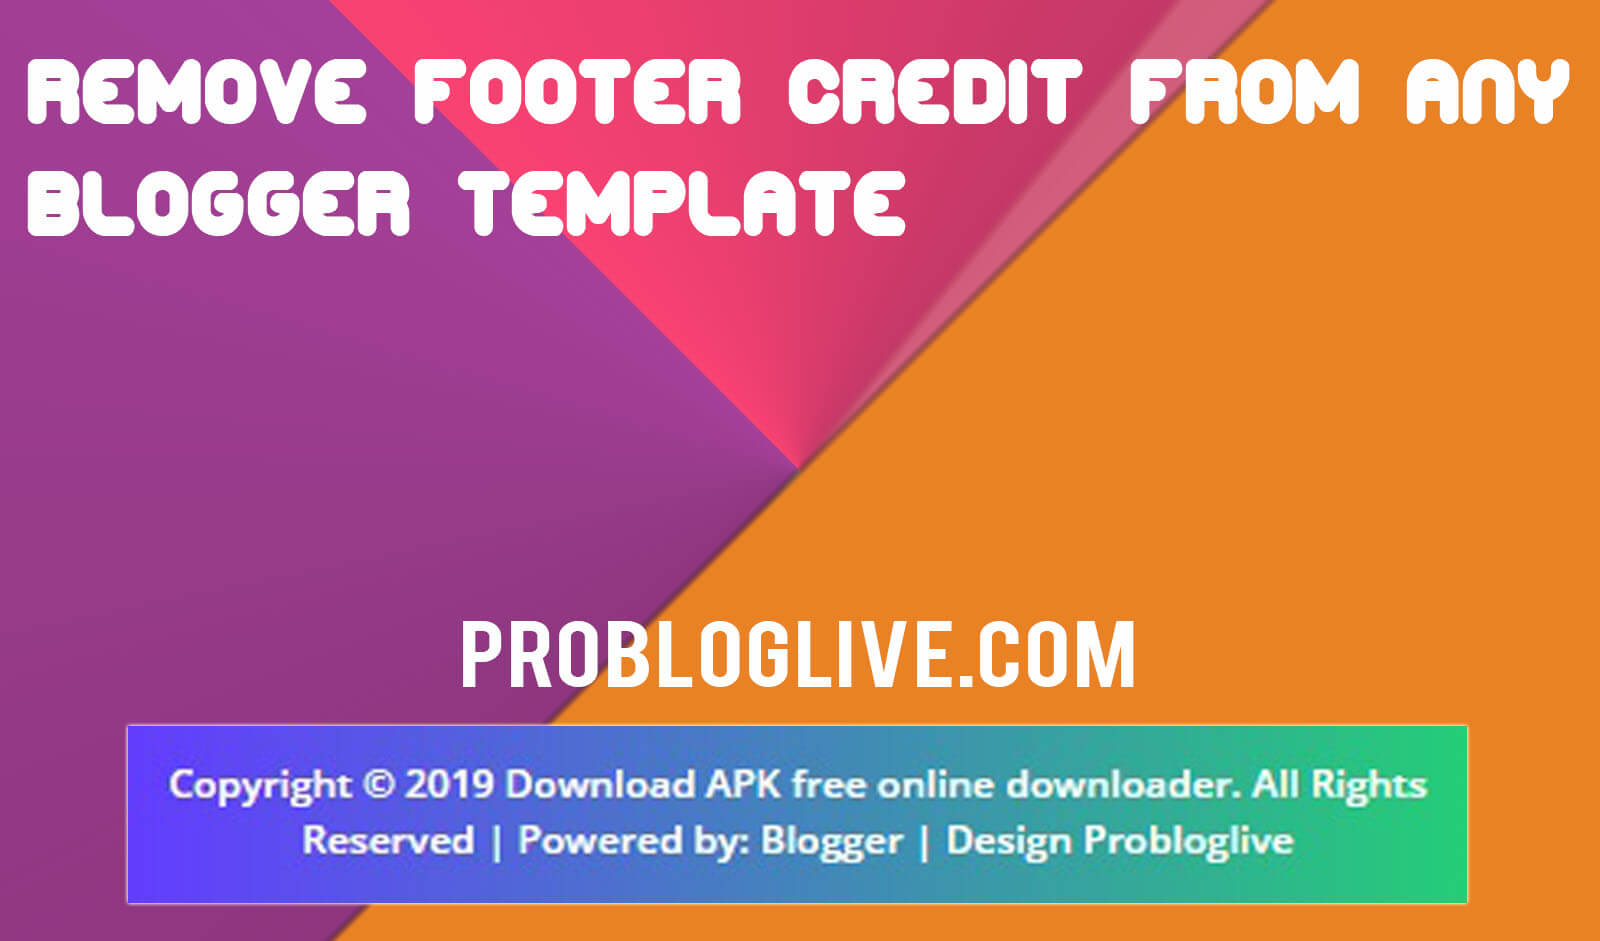 How to Remove Footer Credit from Blogger Template - Probloglive